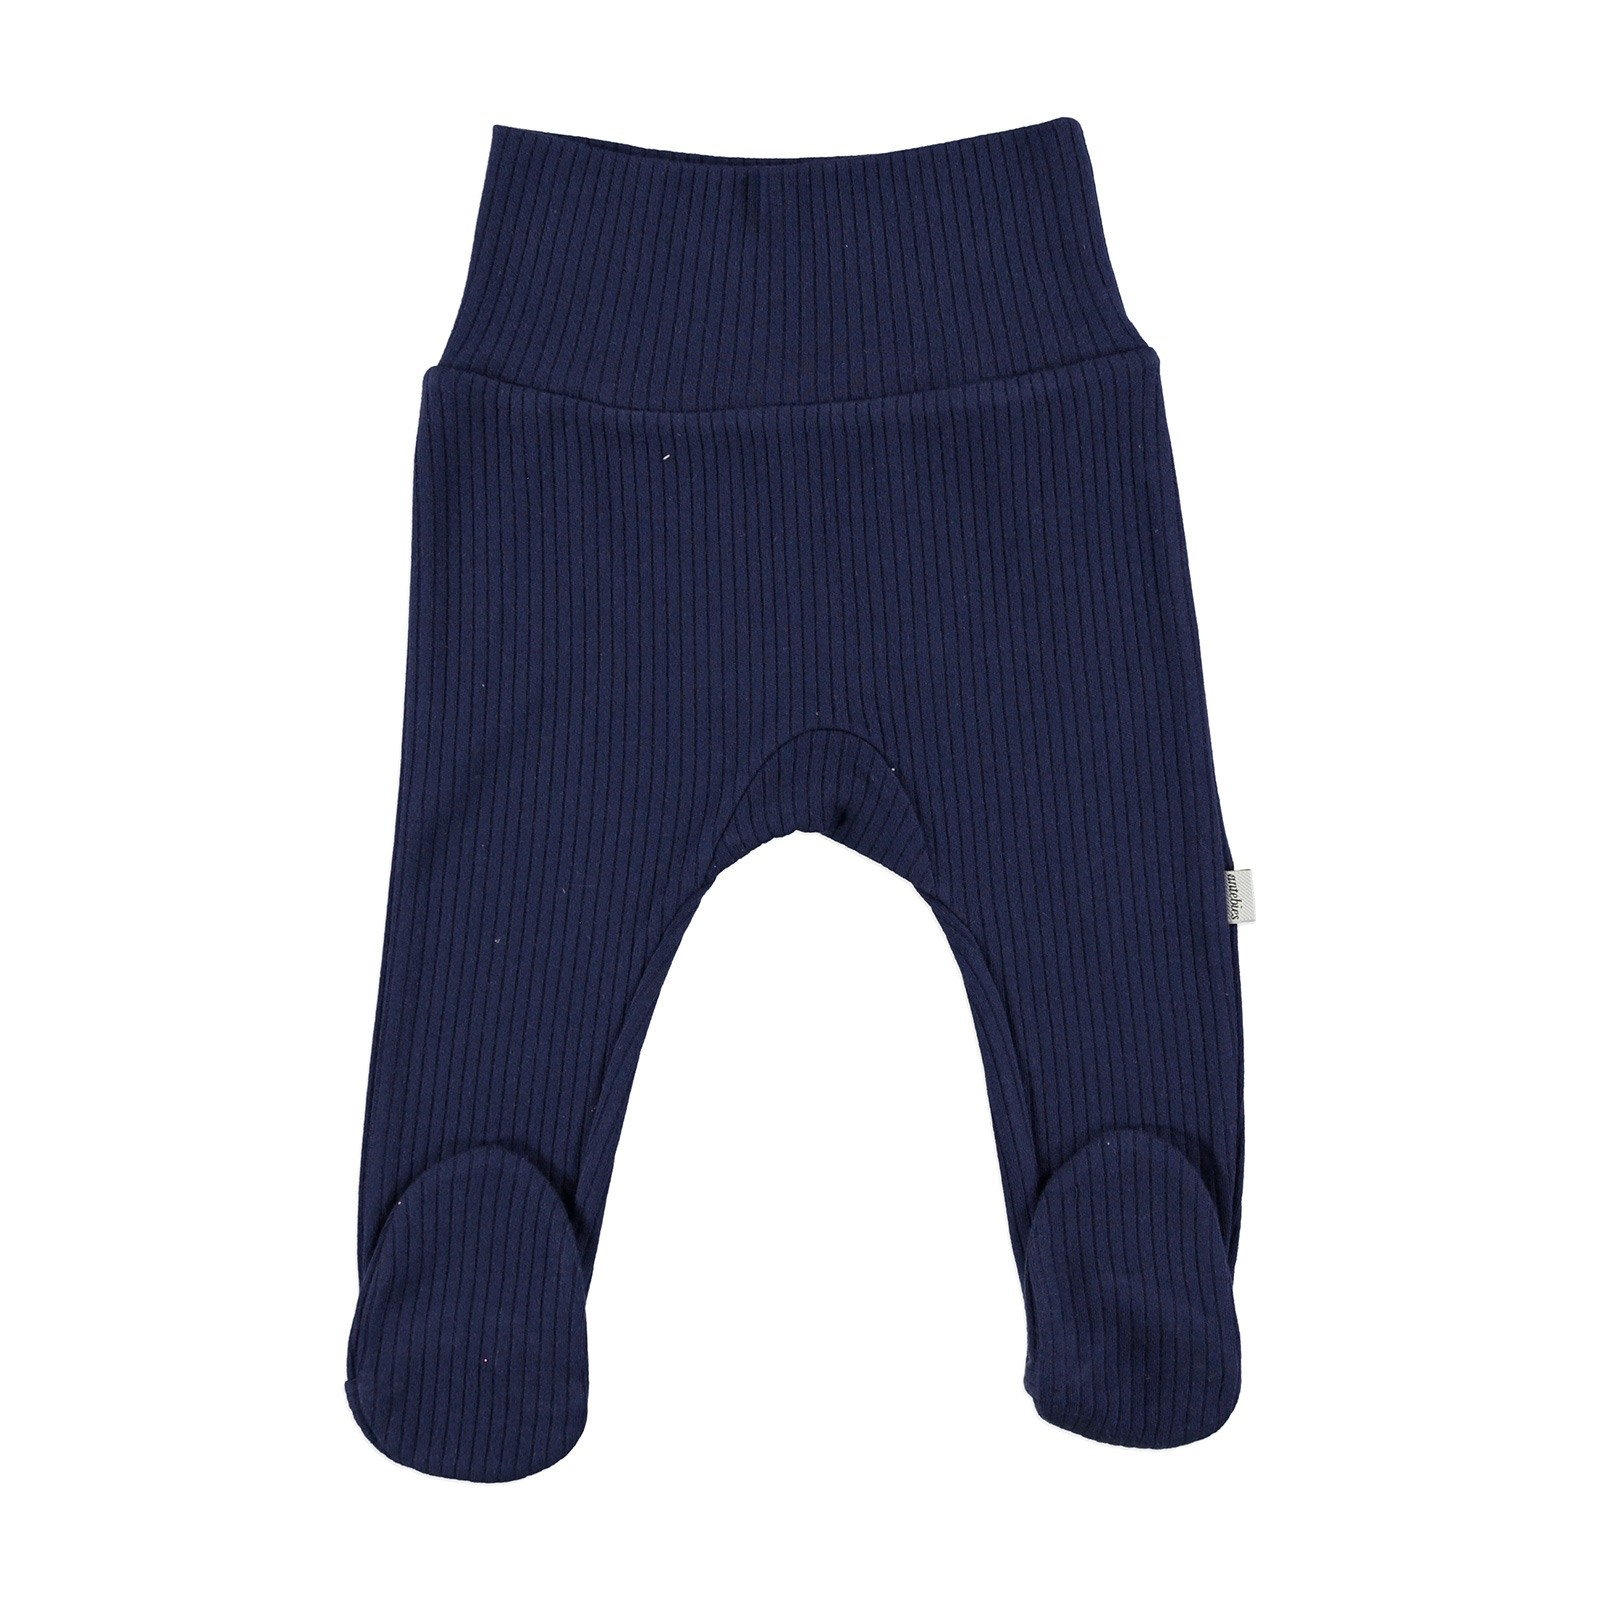 Ebebek Antebies Baby Organic Navy Blue Reported Rib Pants